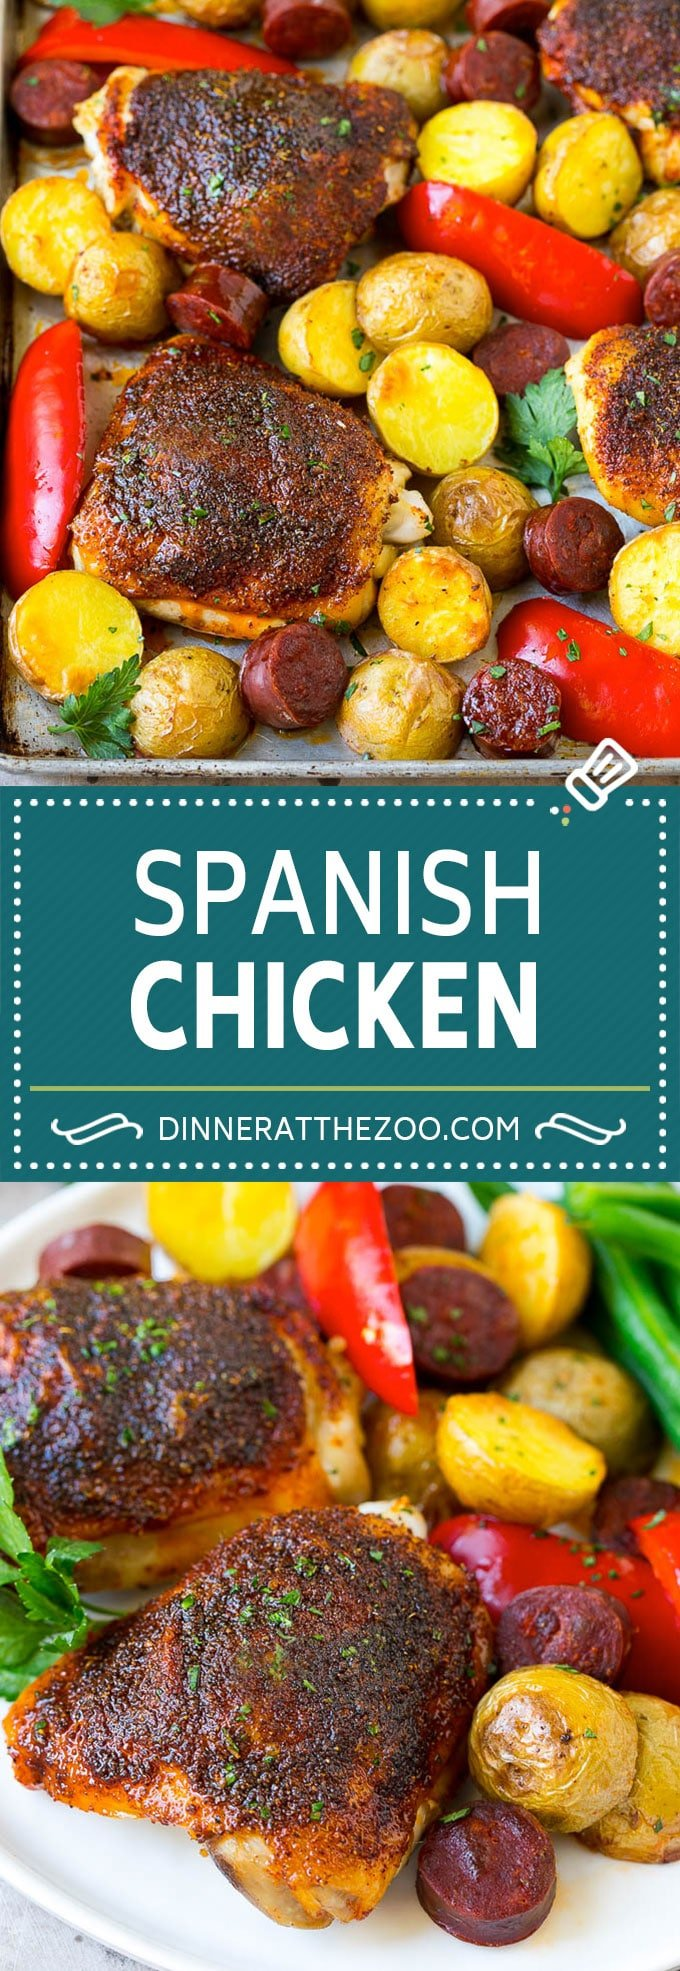 Spanish Chicken Recipe | Sheet Pan Meal | Chicken and Potatoes #spanishfood #chicken #sausage #potatoes #dinner #dinneratthezoo